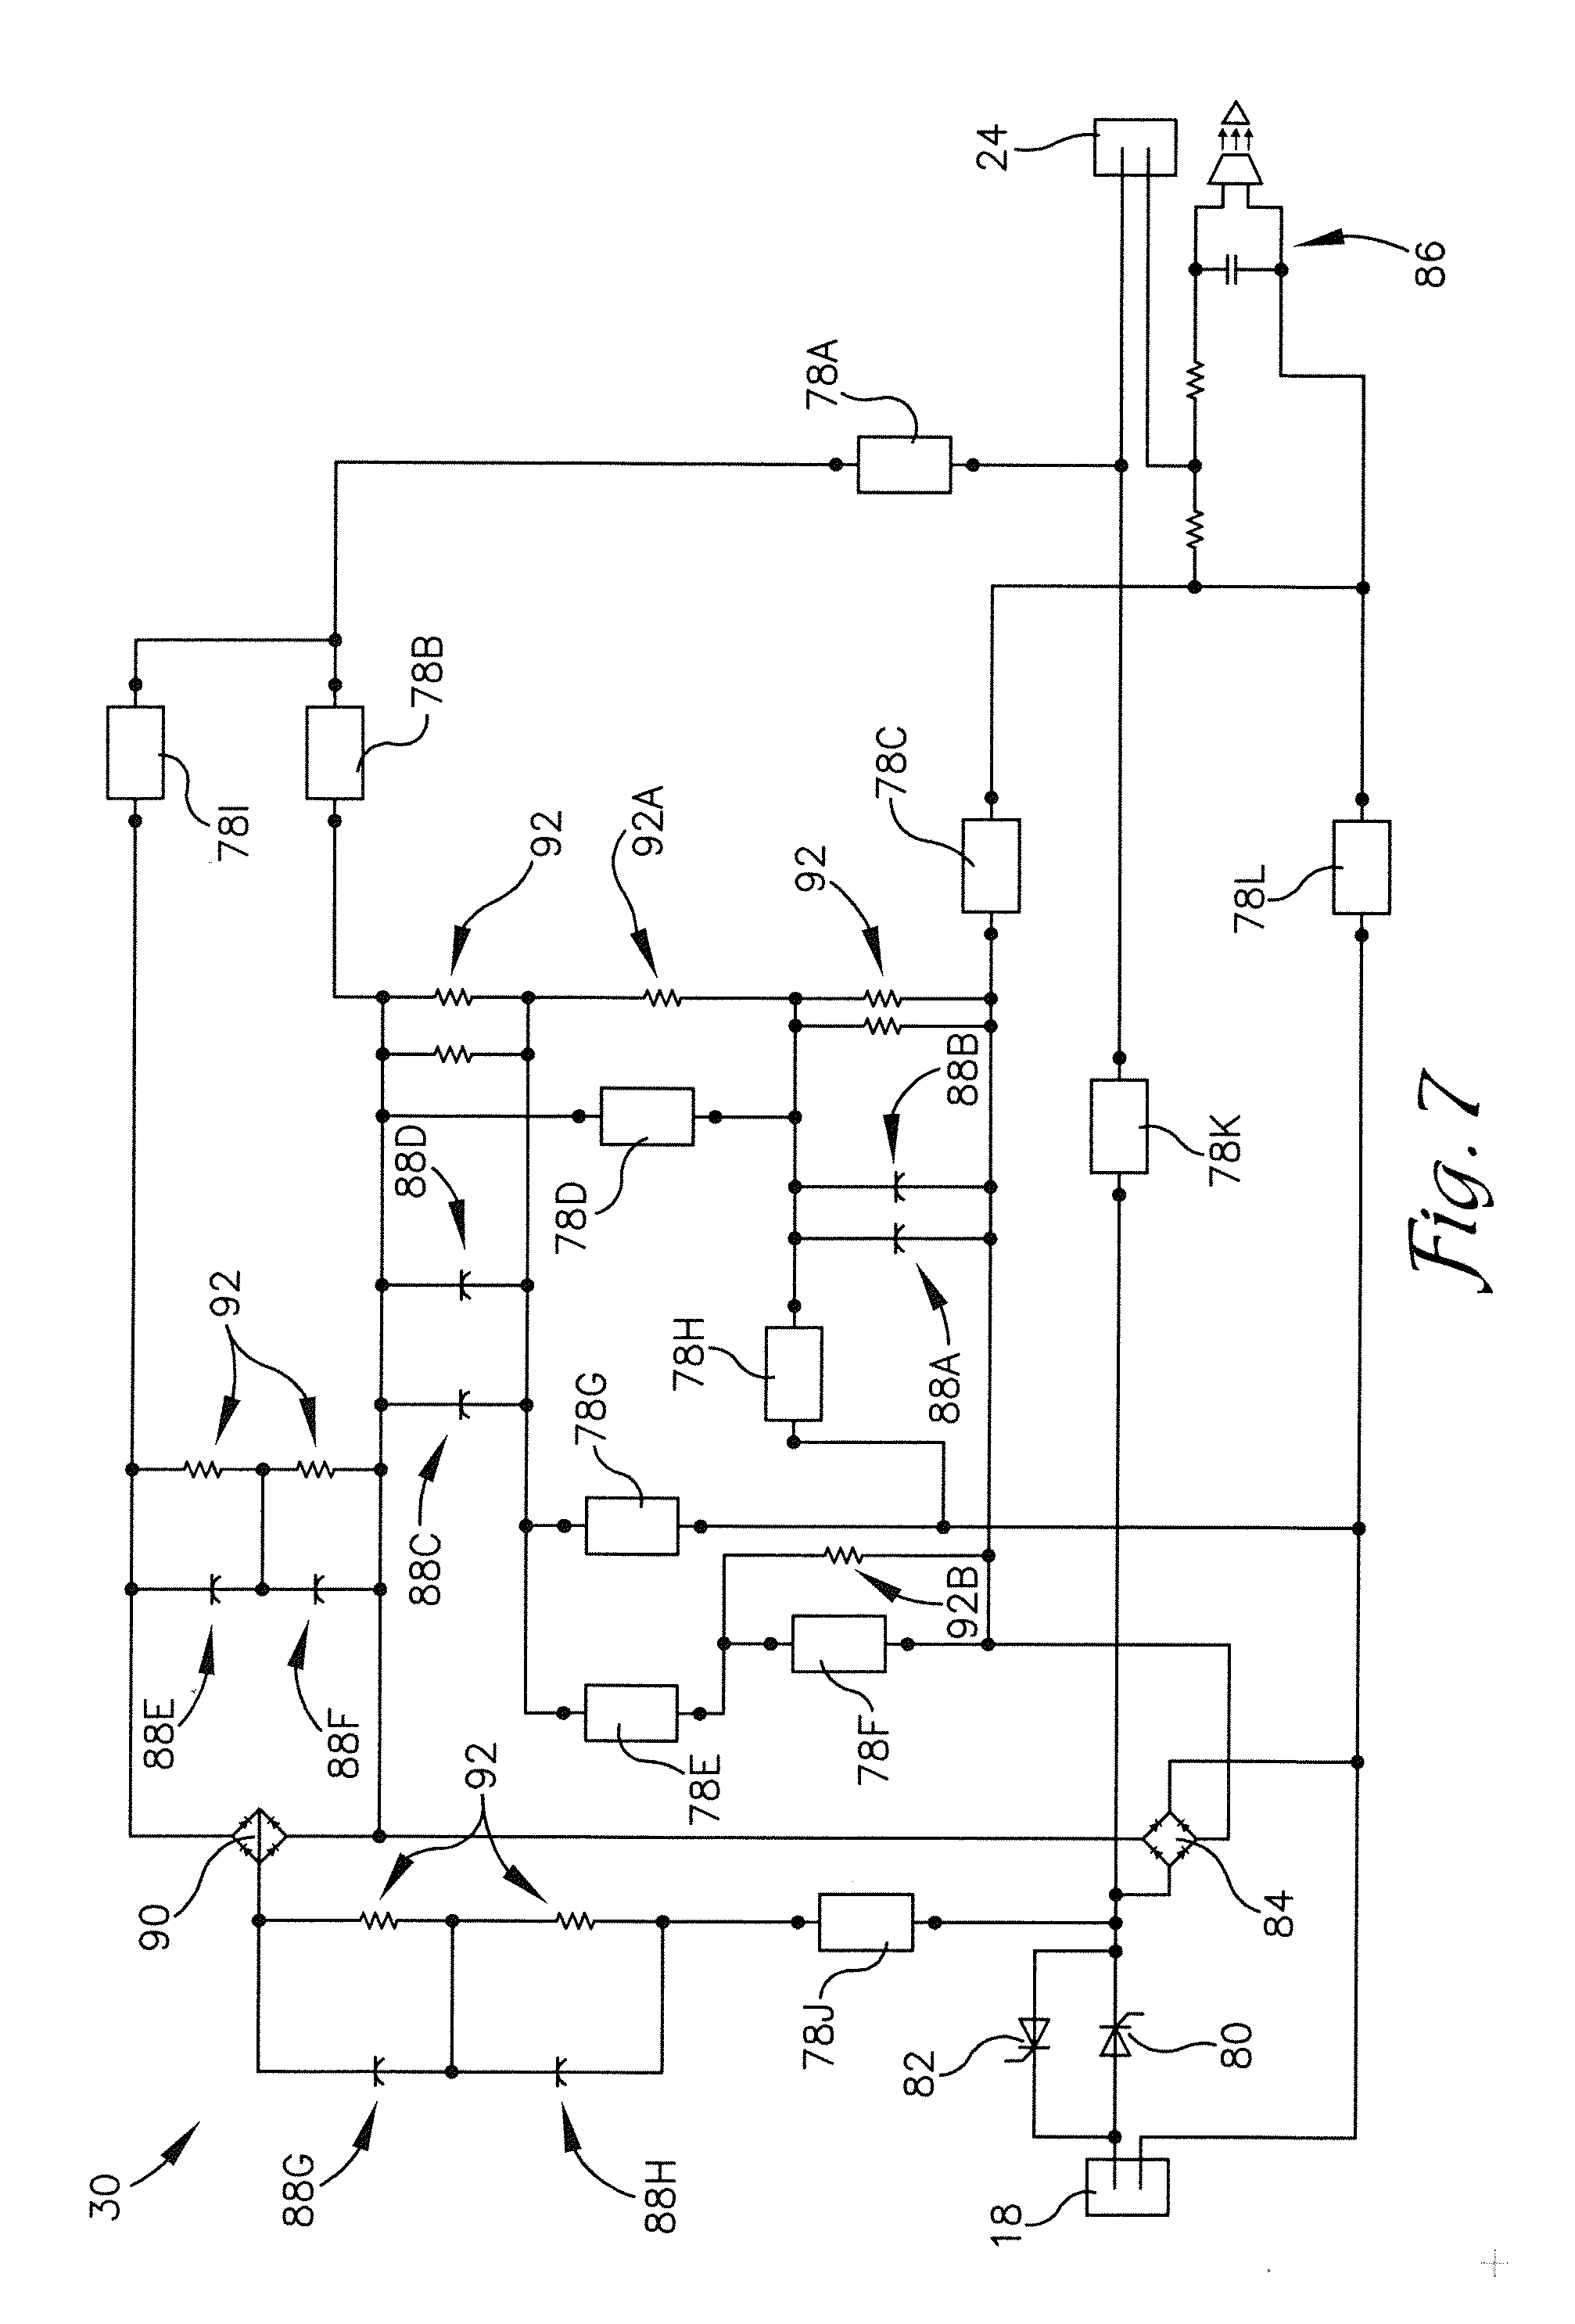 patent us20130042516 - system and method for electrofishing